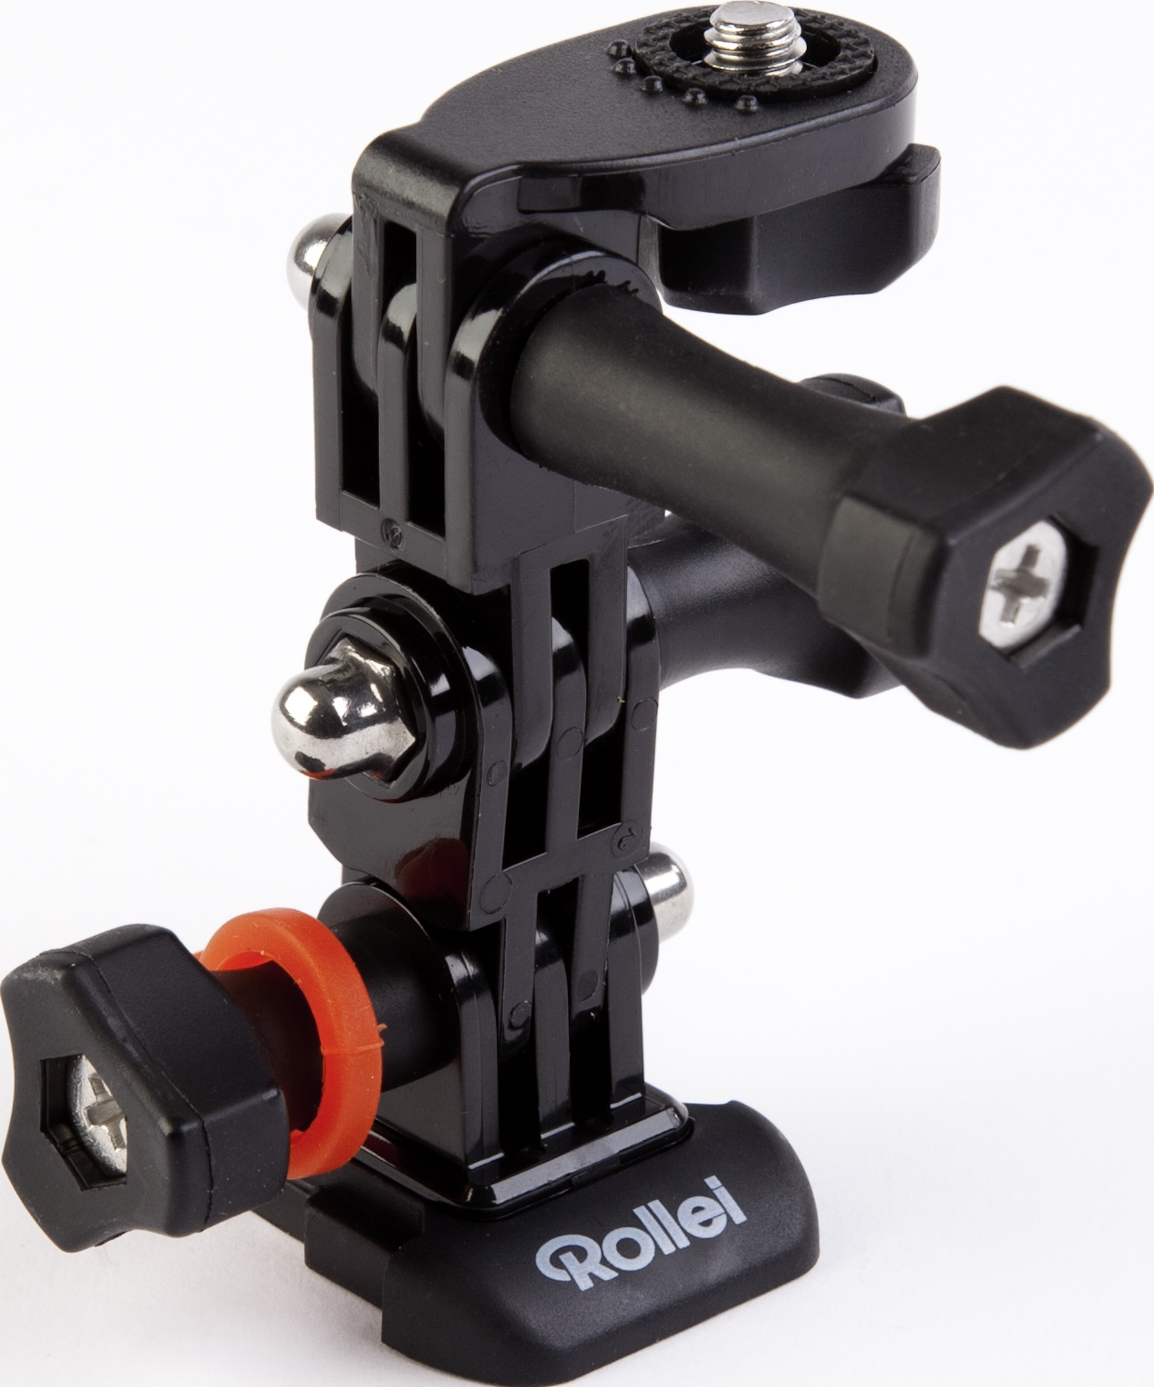 gopro konkurrent rollei bullet hd 5s im test action cam. Black Bedroom Furniture Sets. Home Design Ideas